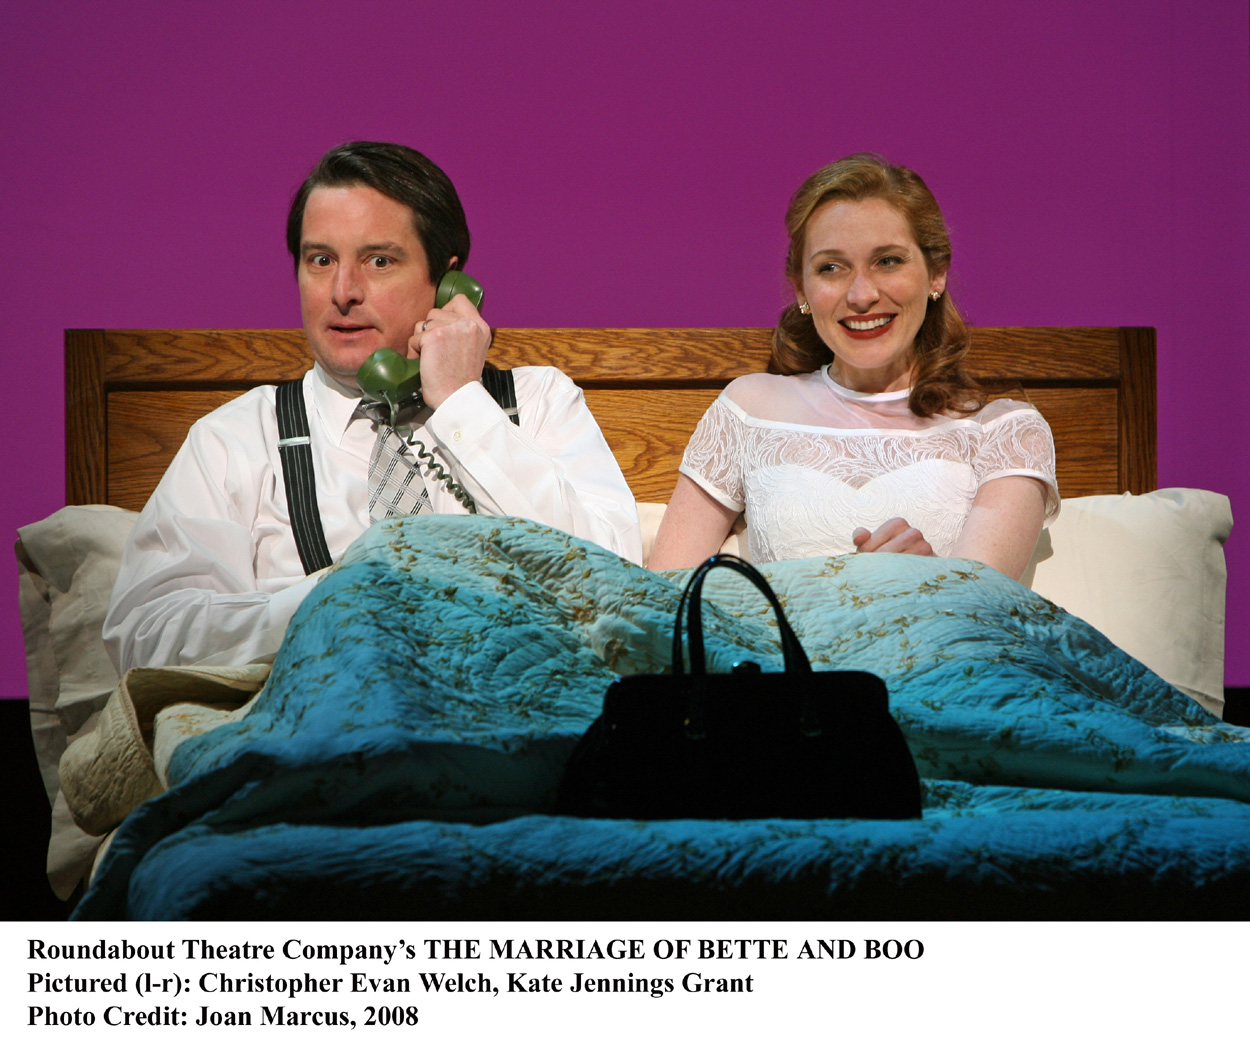 marriage of bette and boo As the play begins bette and boo are being united in matrimony, surrounded by their beaming families but as the further progress of their marriage is chronicled it becomes increasingly clear that things are not working out quite as hoped for.